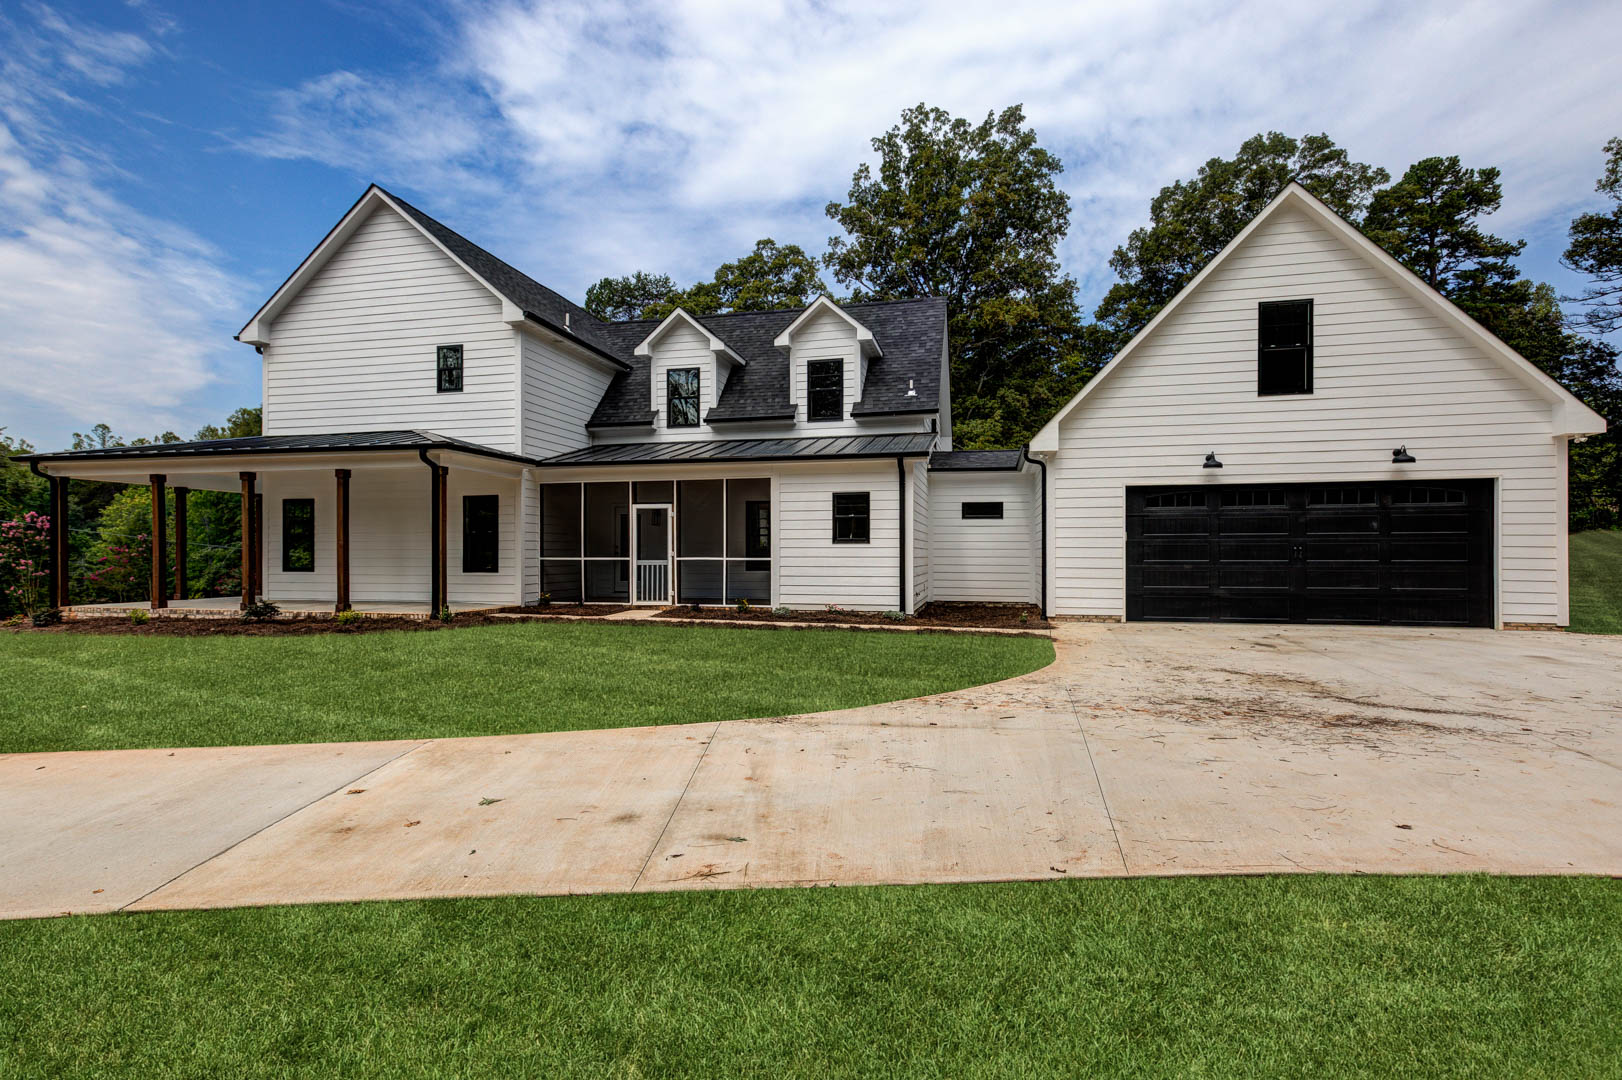 Farmhouse-style house in Pfafftown, NC